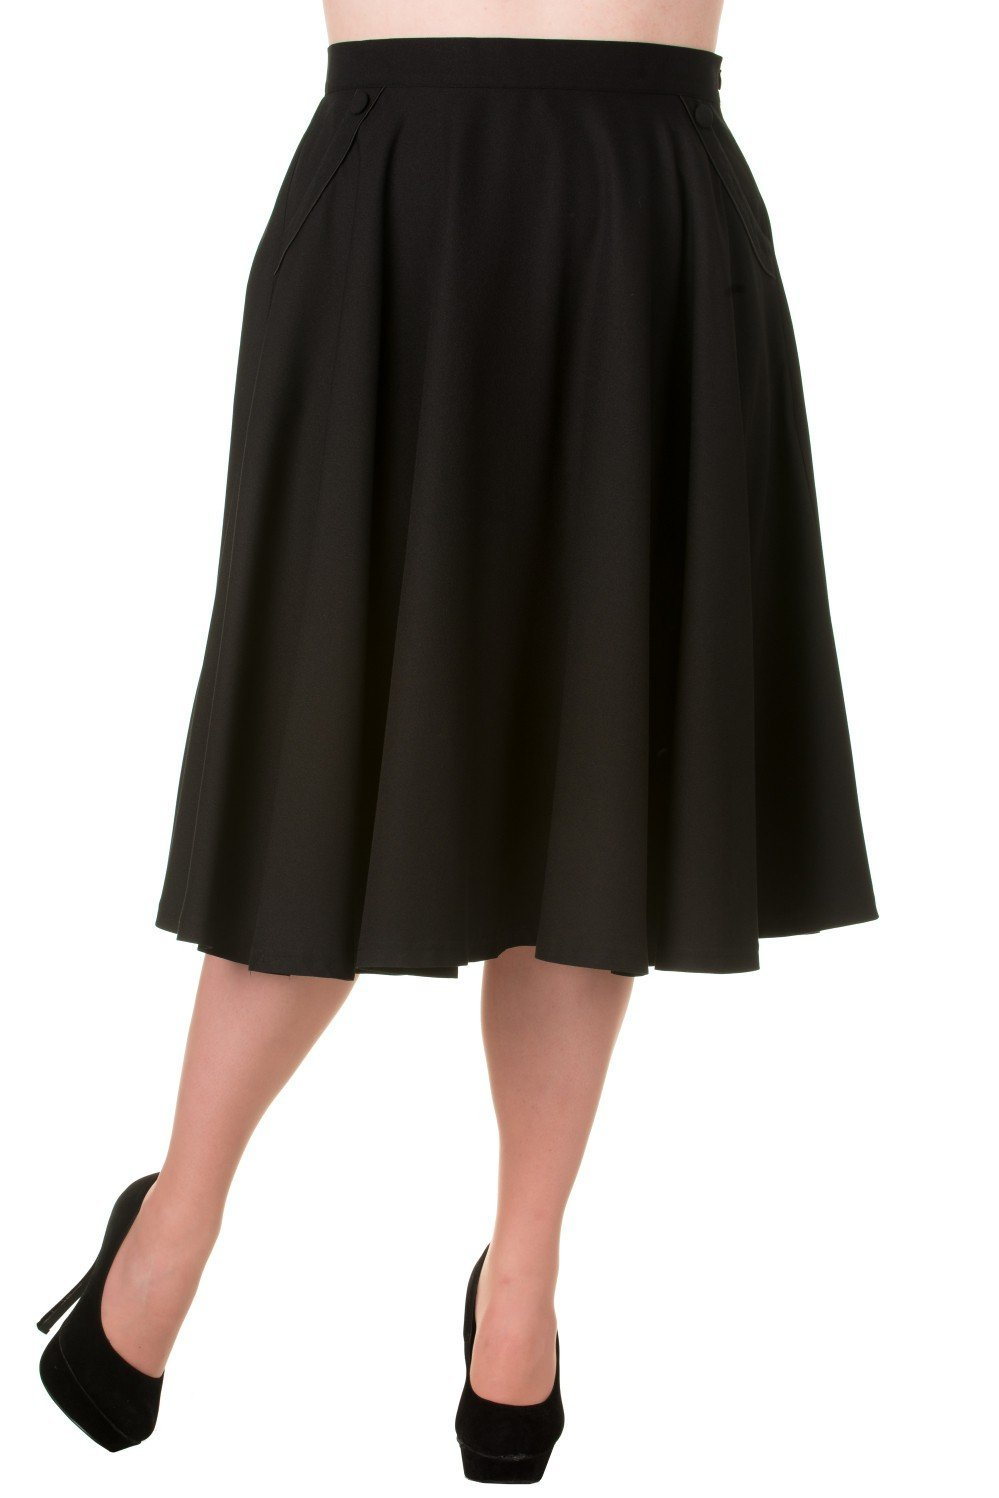 Banned Black Gracie Swing Skirt (Plus Size) - Bohemian Finds